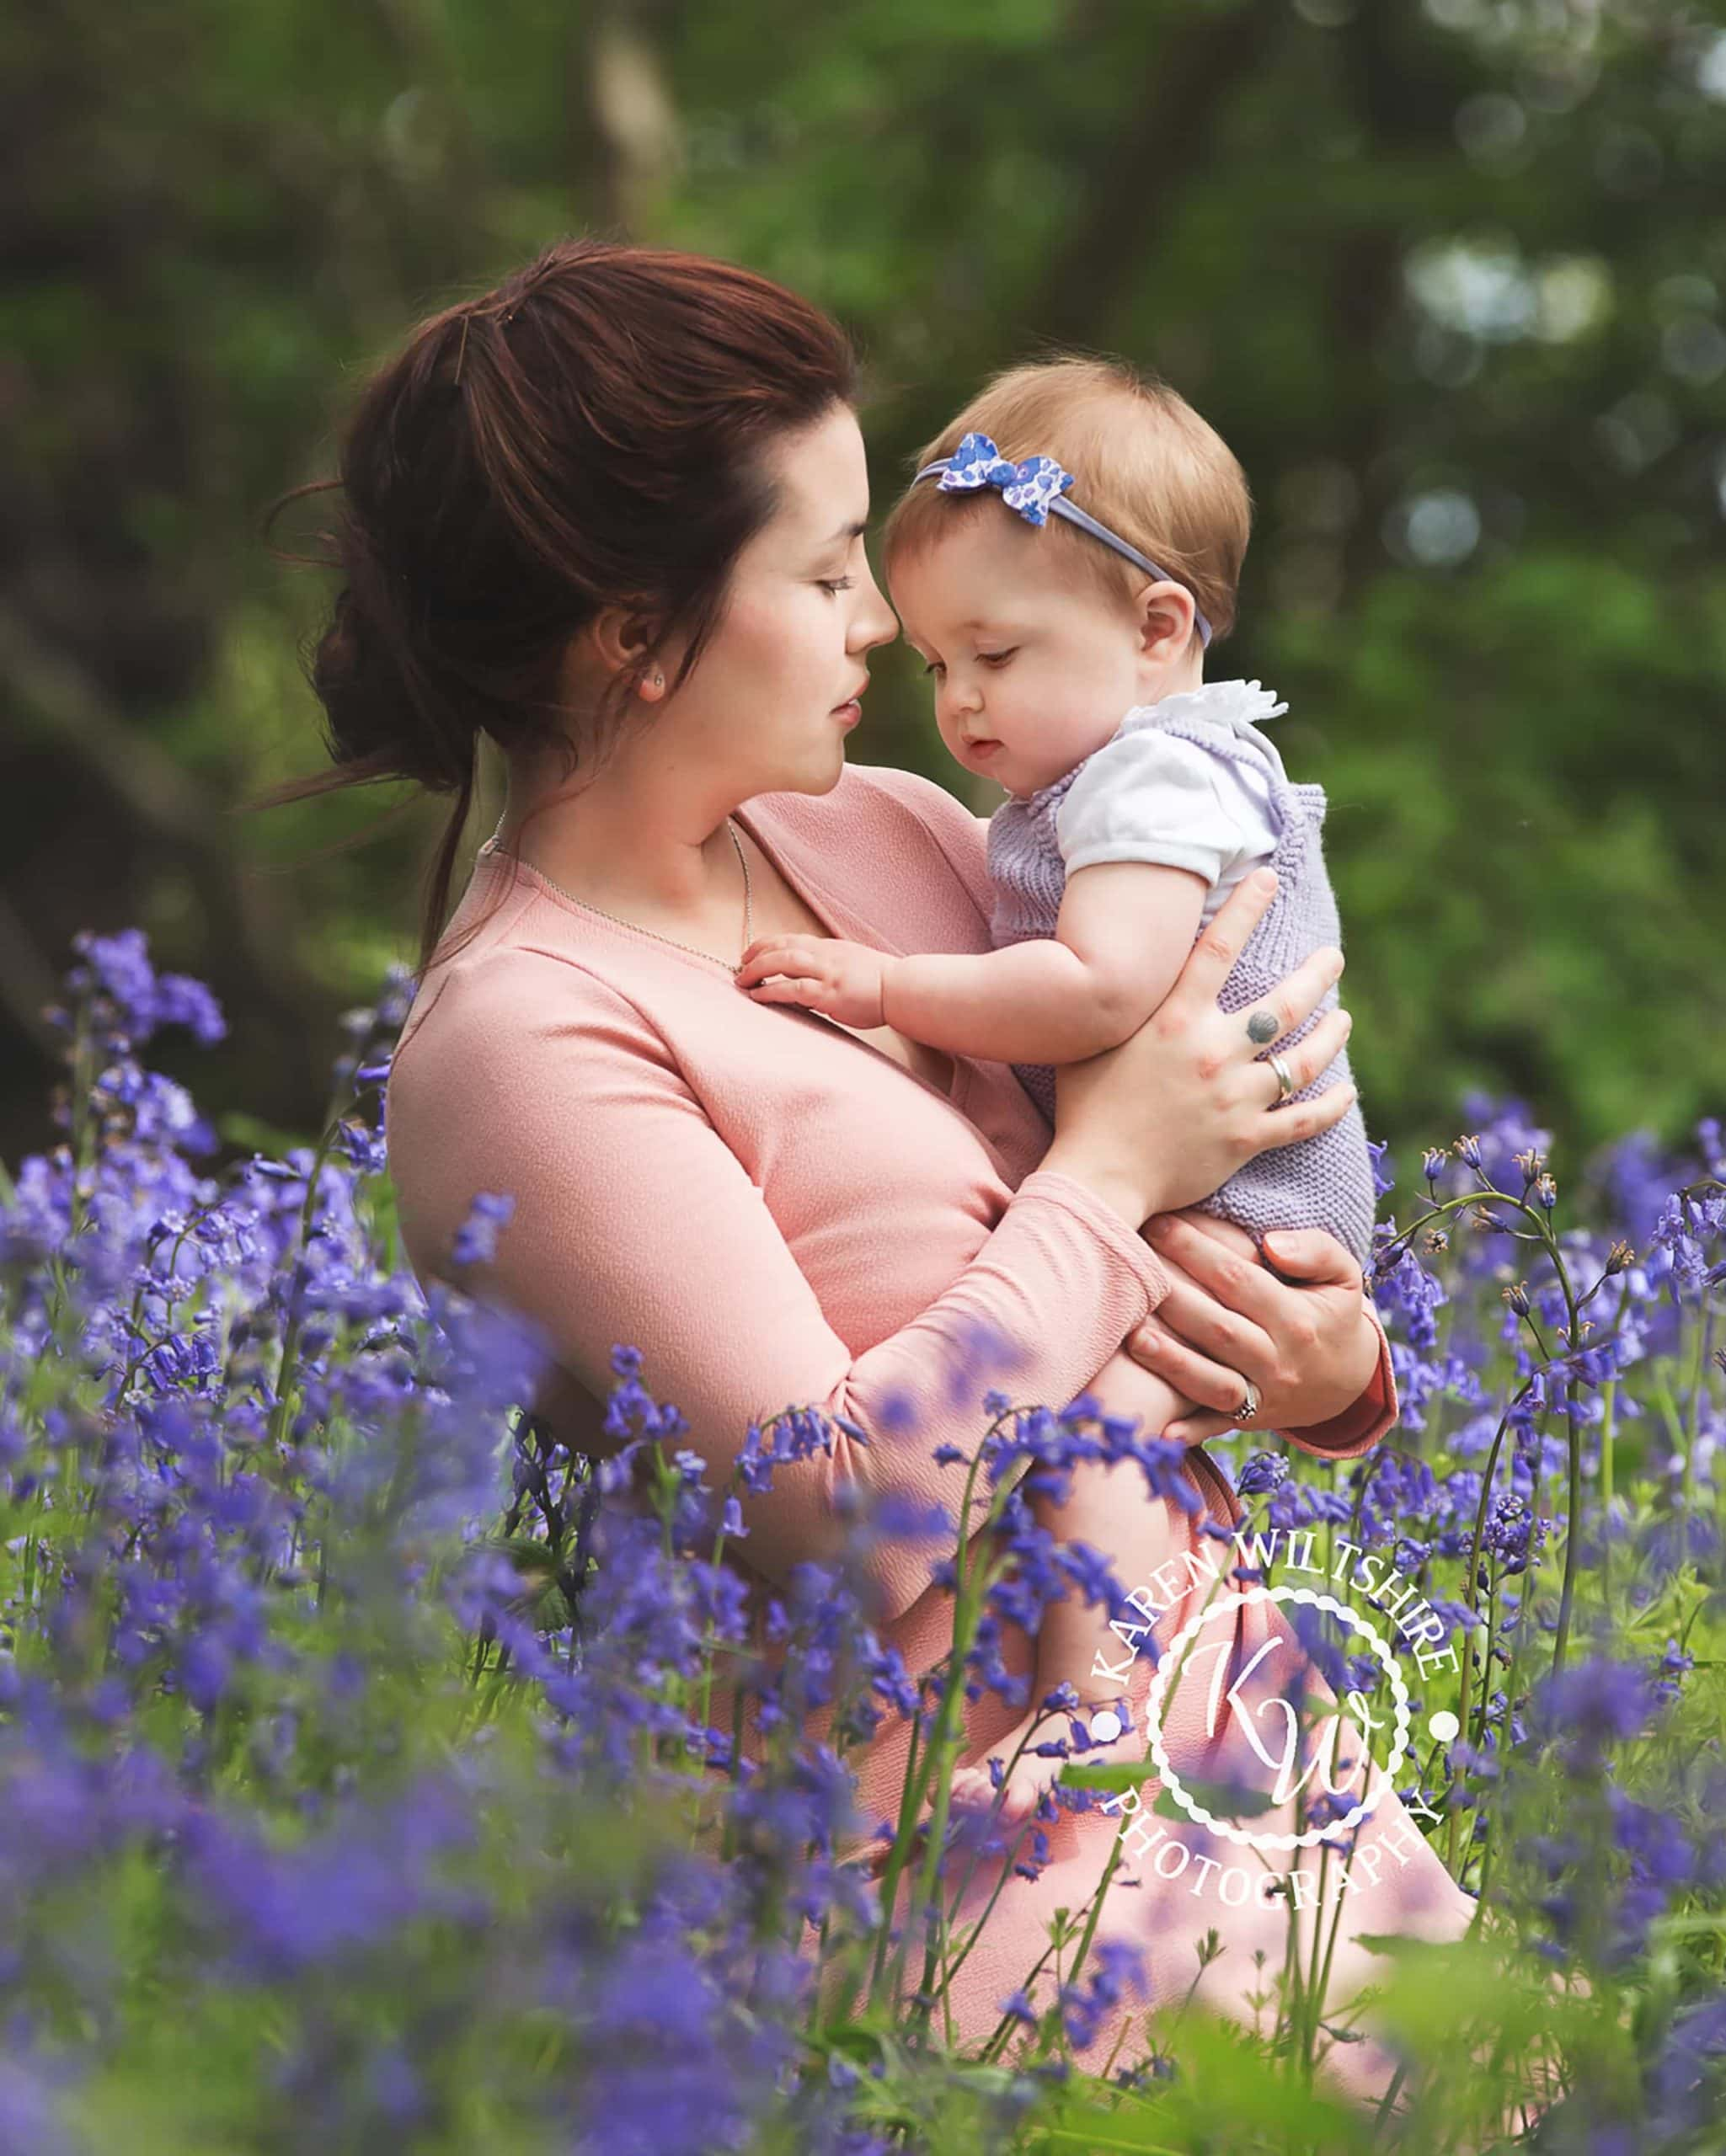 mother and baby in bluebell woods